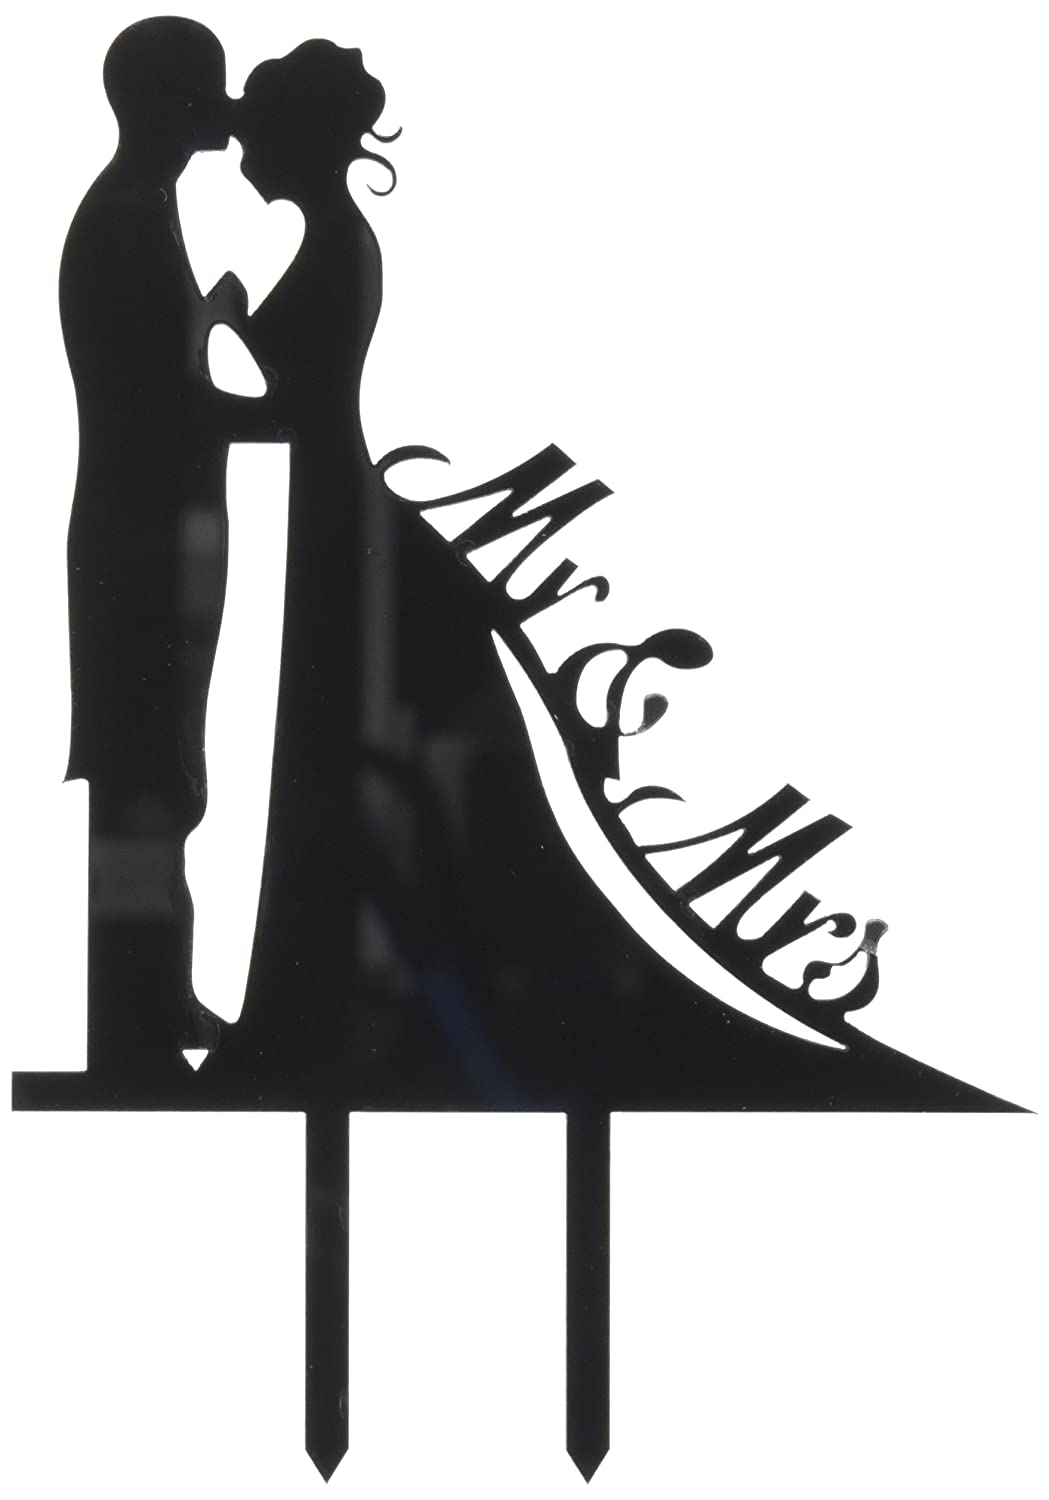 Unik Occasions Mr. & Mrs. Bride and Groom Silhouette Wedding Cake Topper Pick UO-CT-AC-0005